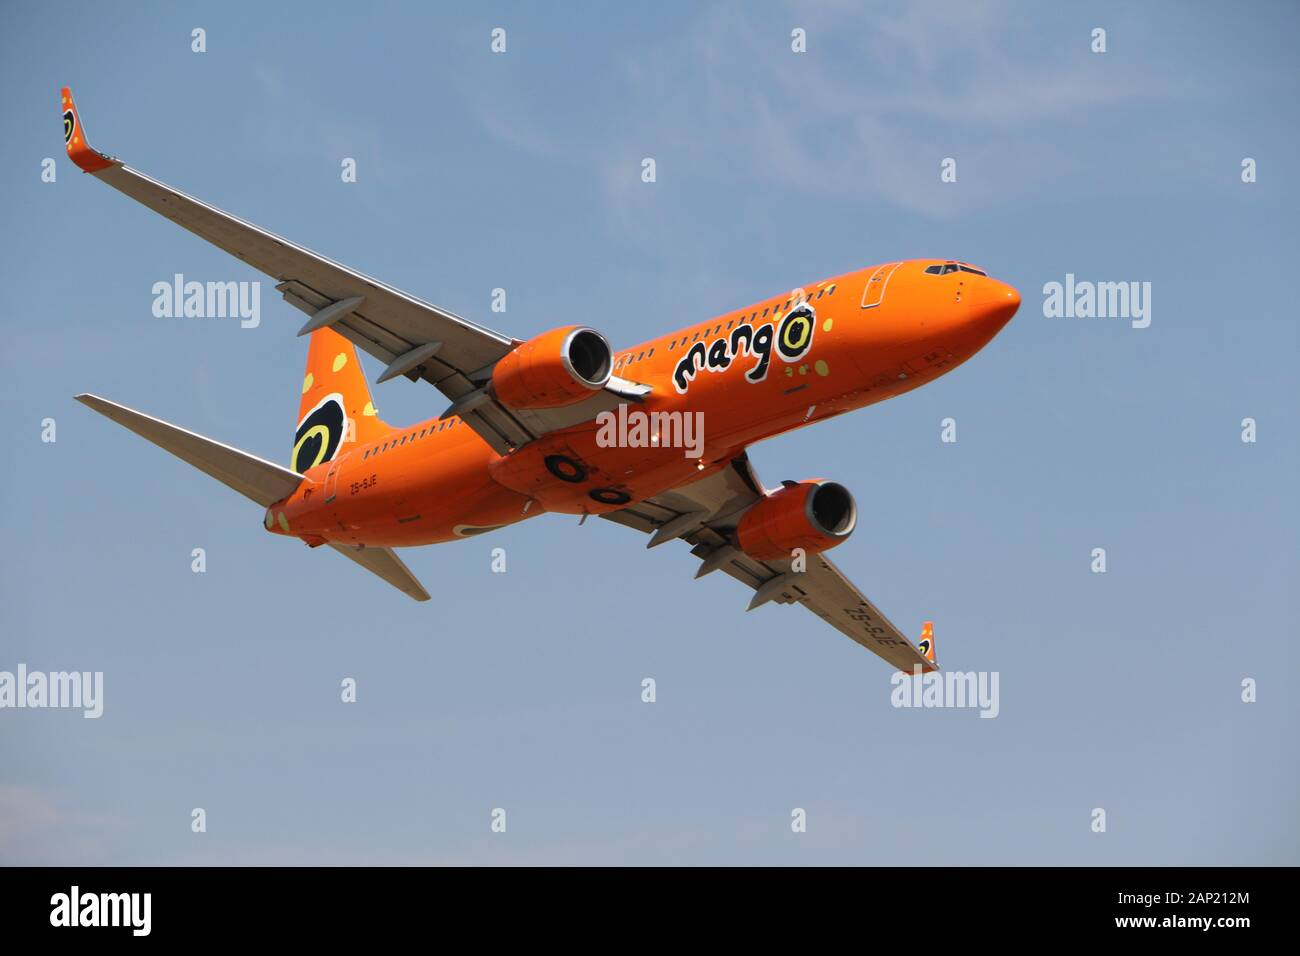 Mango Airlines High Resolution Stock Photography And Images Alamy